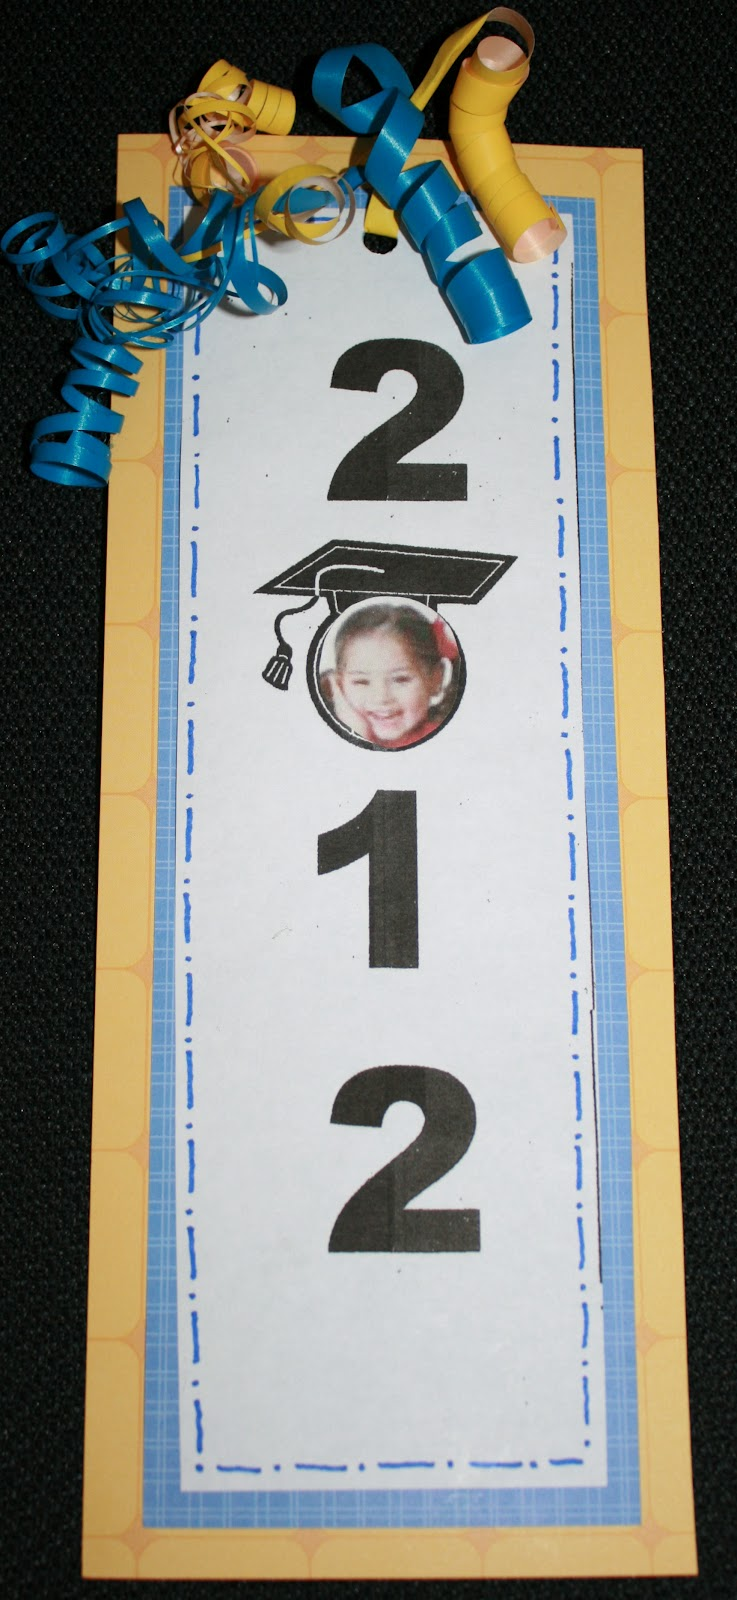 Preschool Graduation Program Ideas